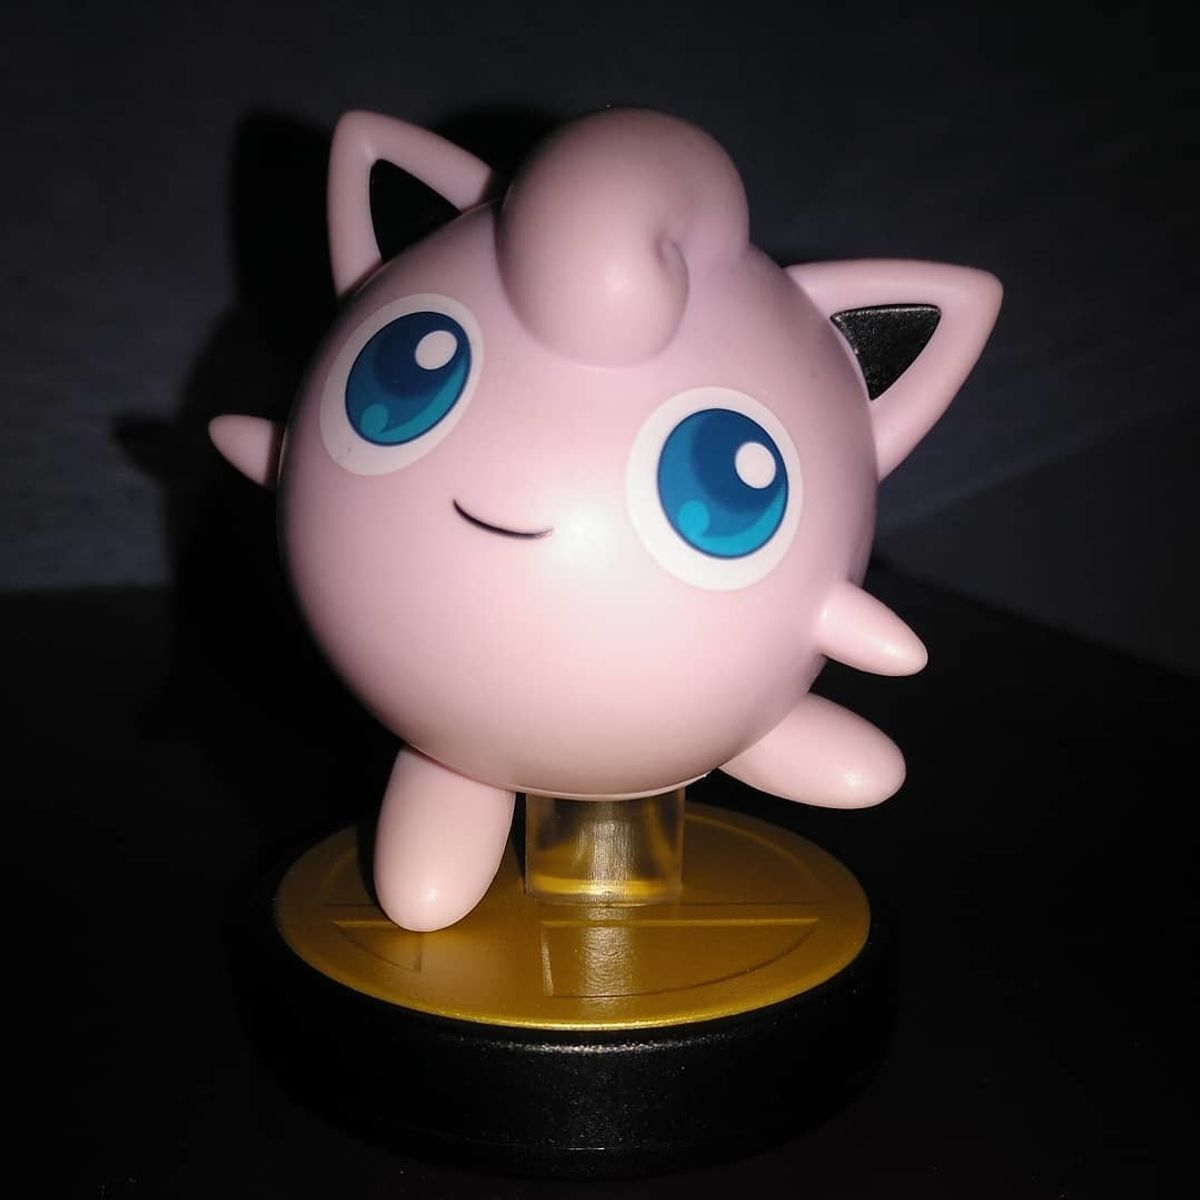 5 Musicians Who Should Score Jigglypuff's 'A Star Is Born' Remake